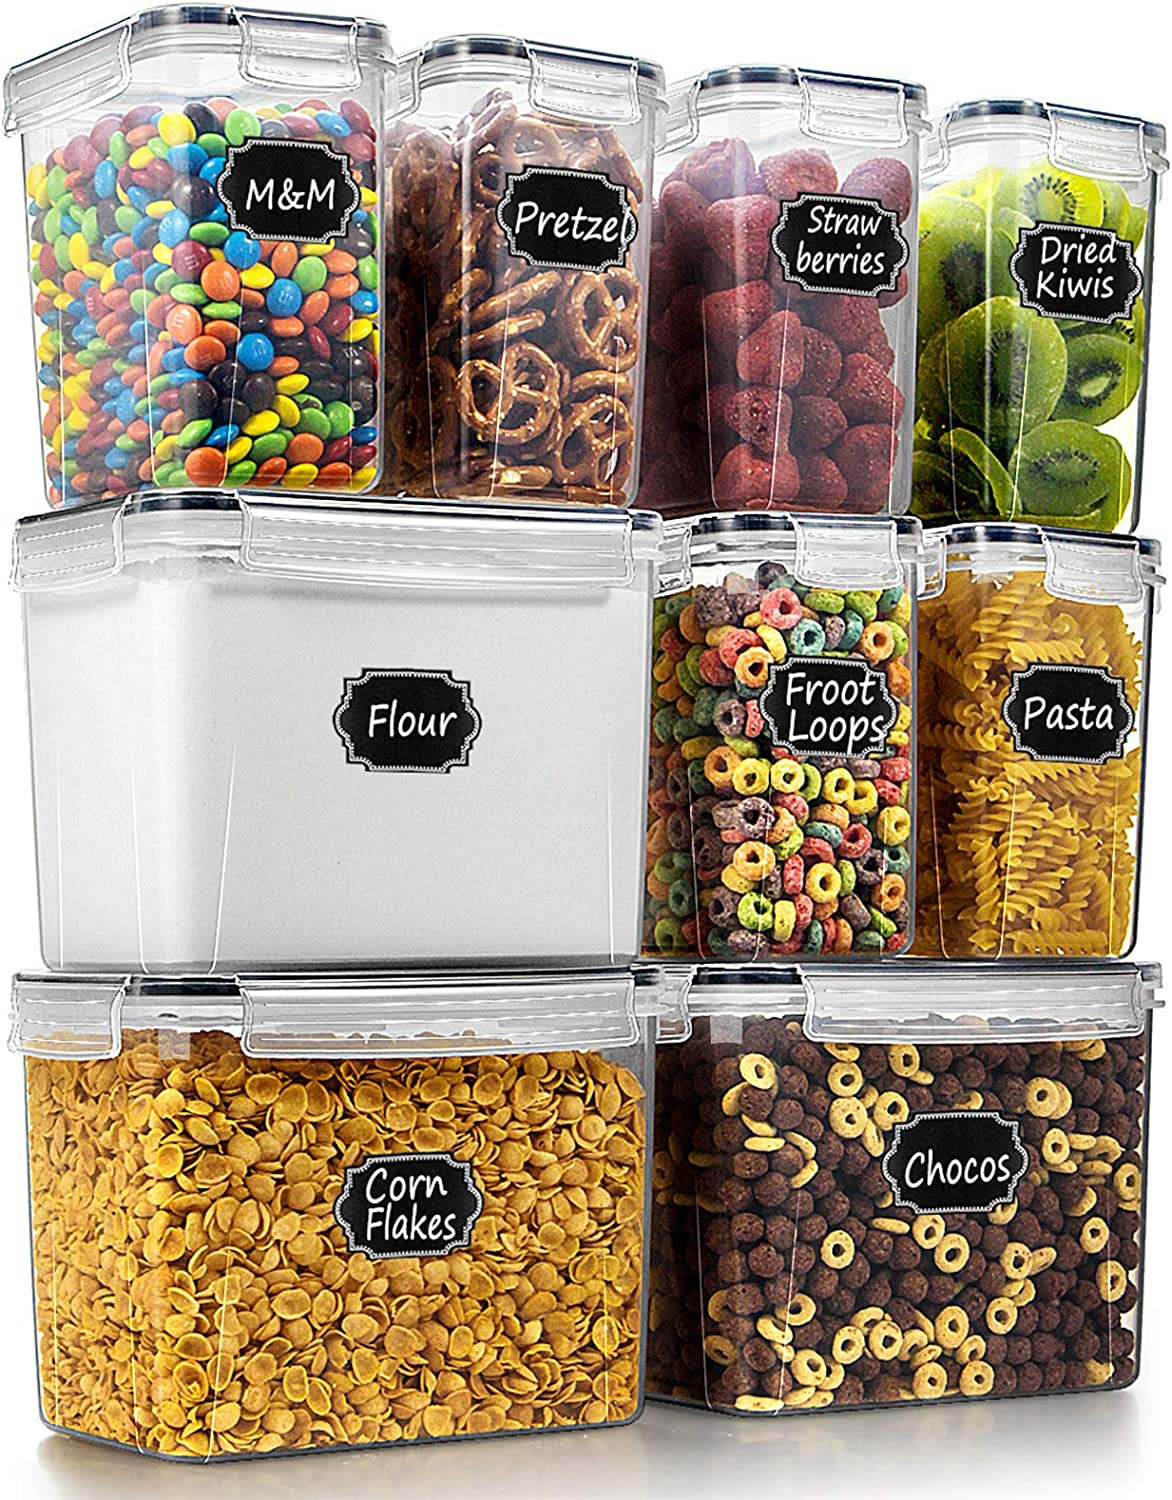 Wildone Food Storage Containers Set of 9 - Airtight Cereal & Dry Food Storage Containers for for Flour, Sugar, Baking Supplies, with 20 Chalkboard Labels & 1 Marker